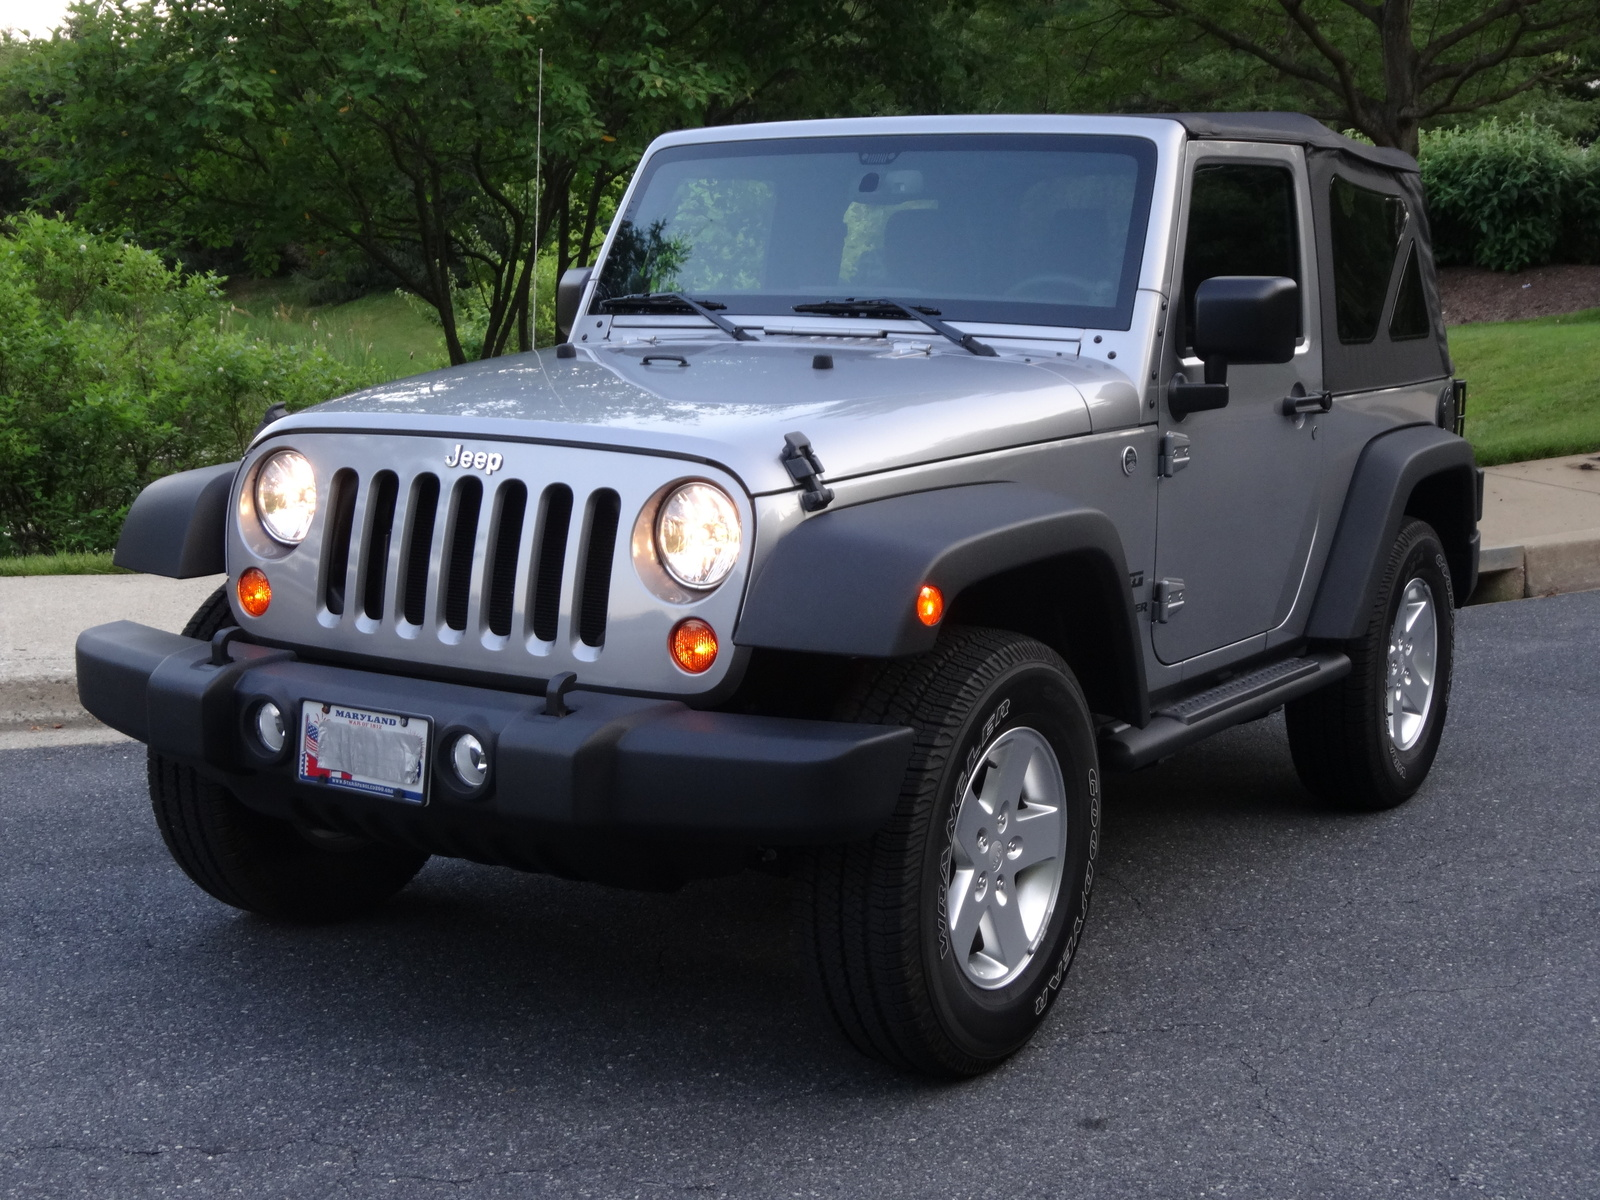 used 2013 jeep wrangler for sale in philadelphia pa. Black Bedroom Furniture Sets. Home Design Ideas